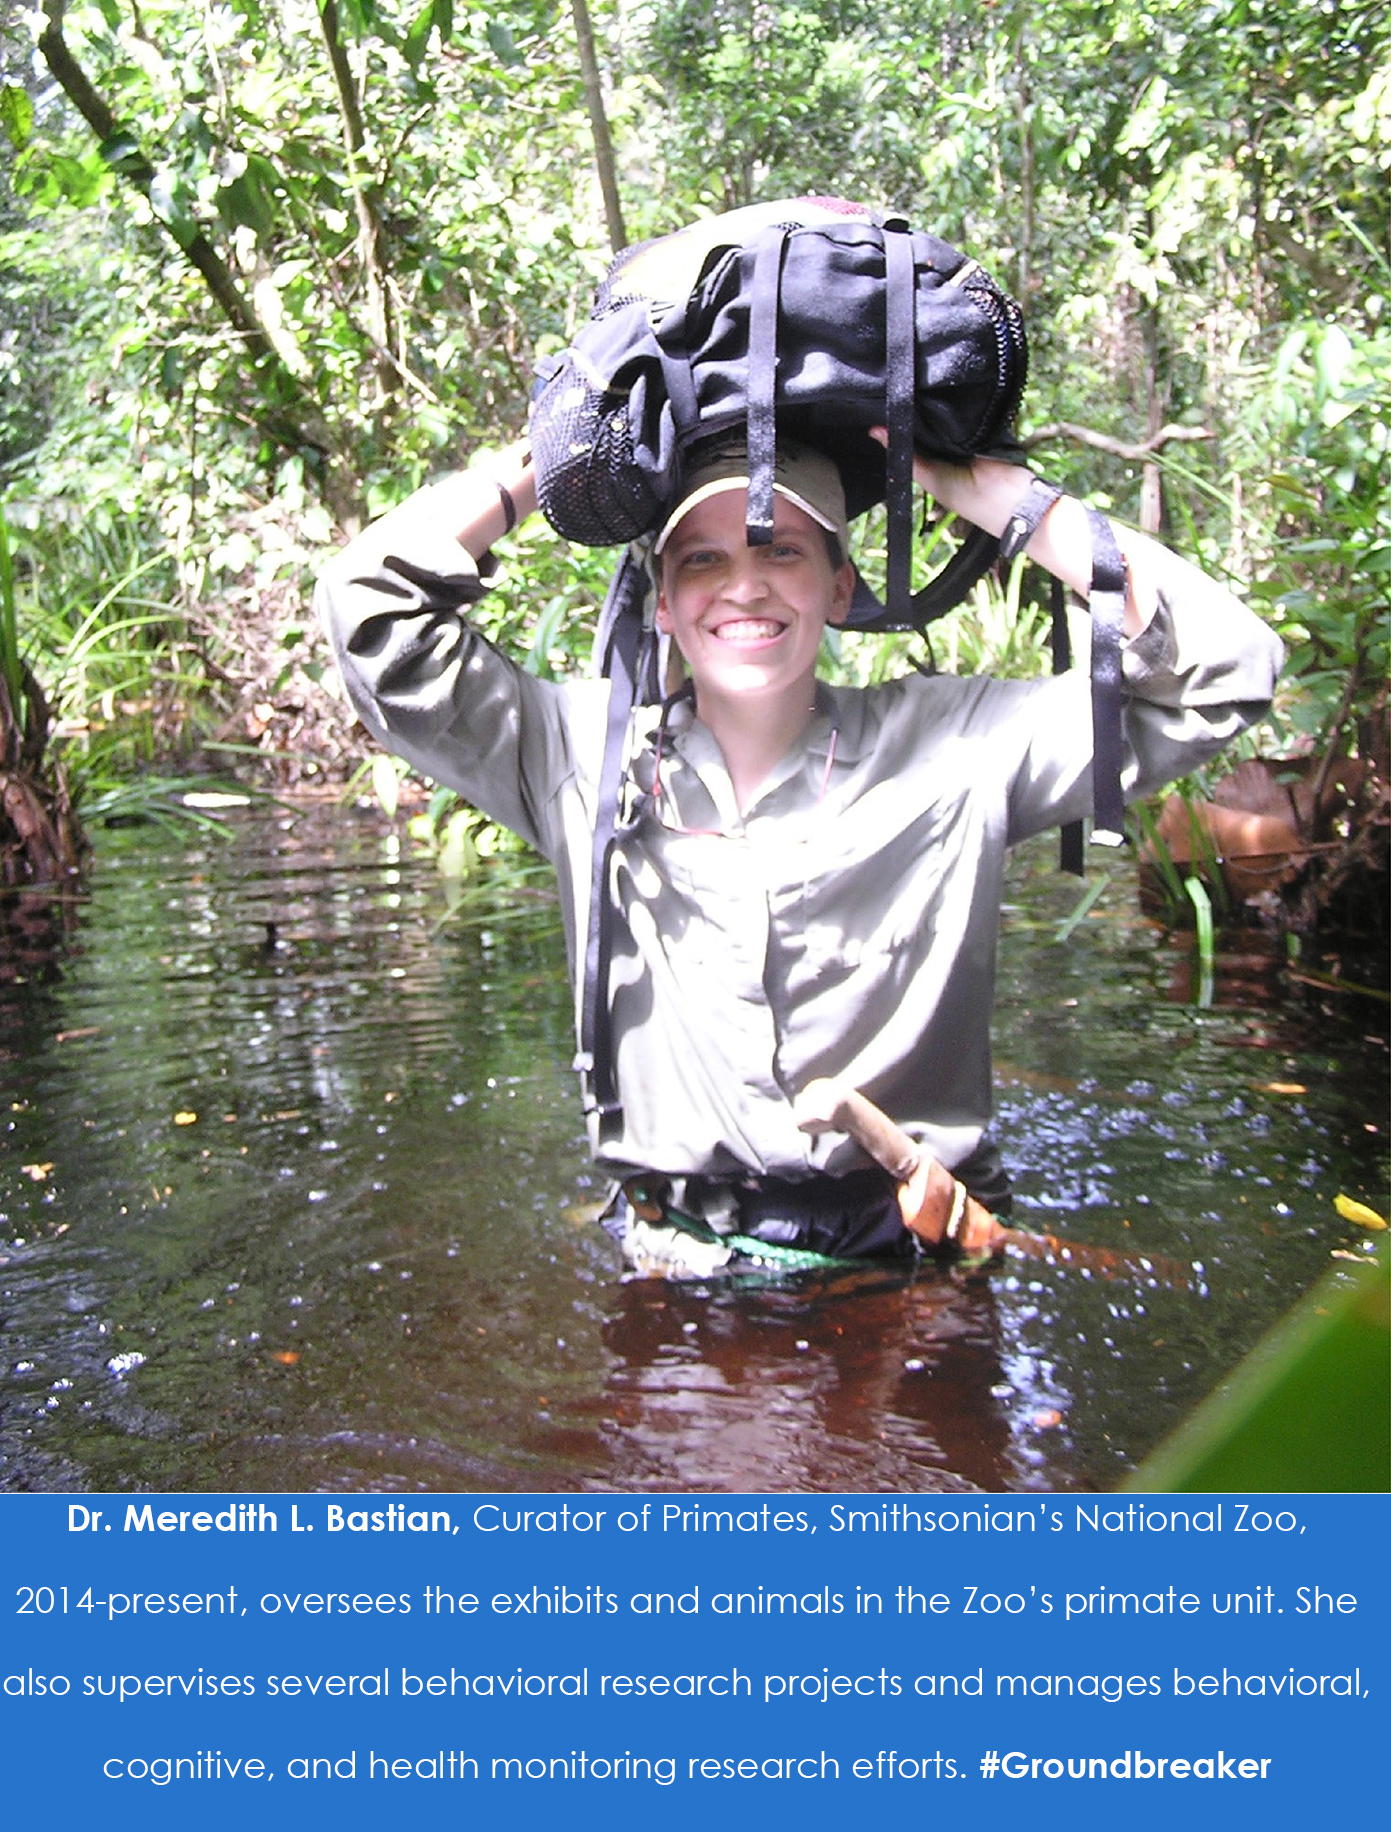 A person wades through water with a backpack over their head.